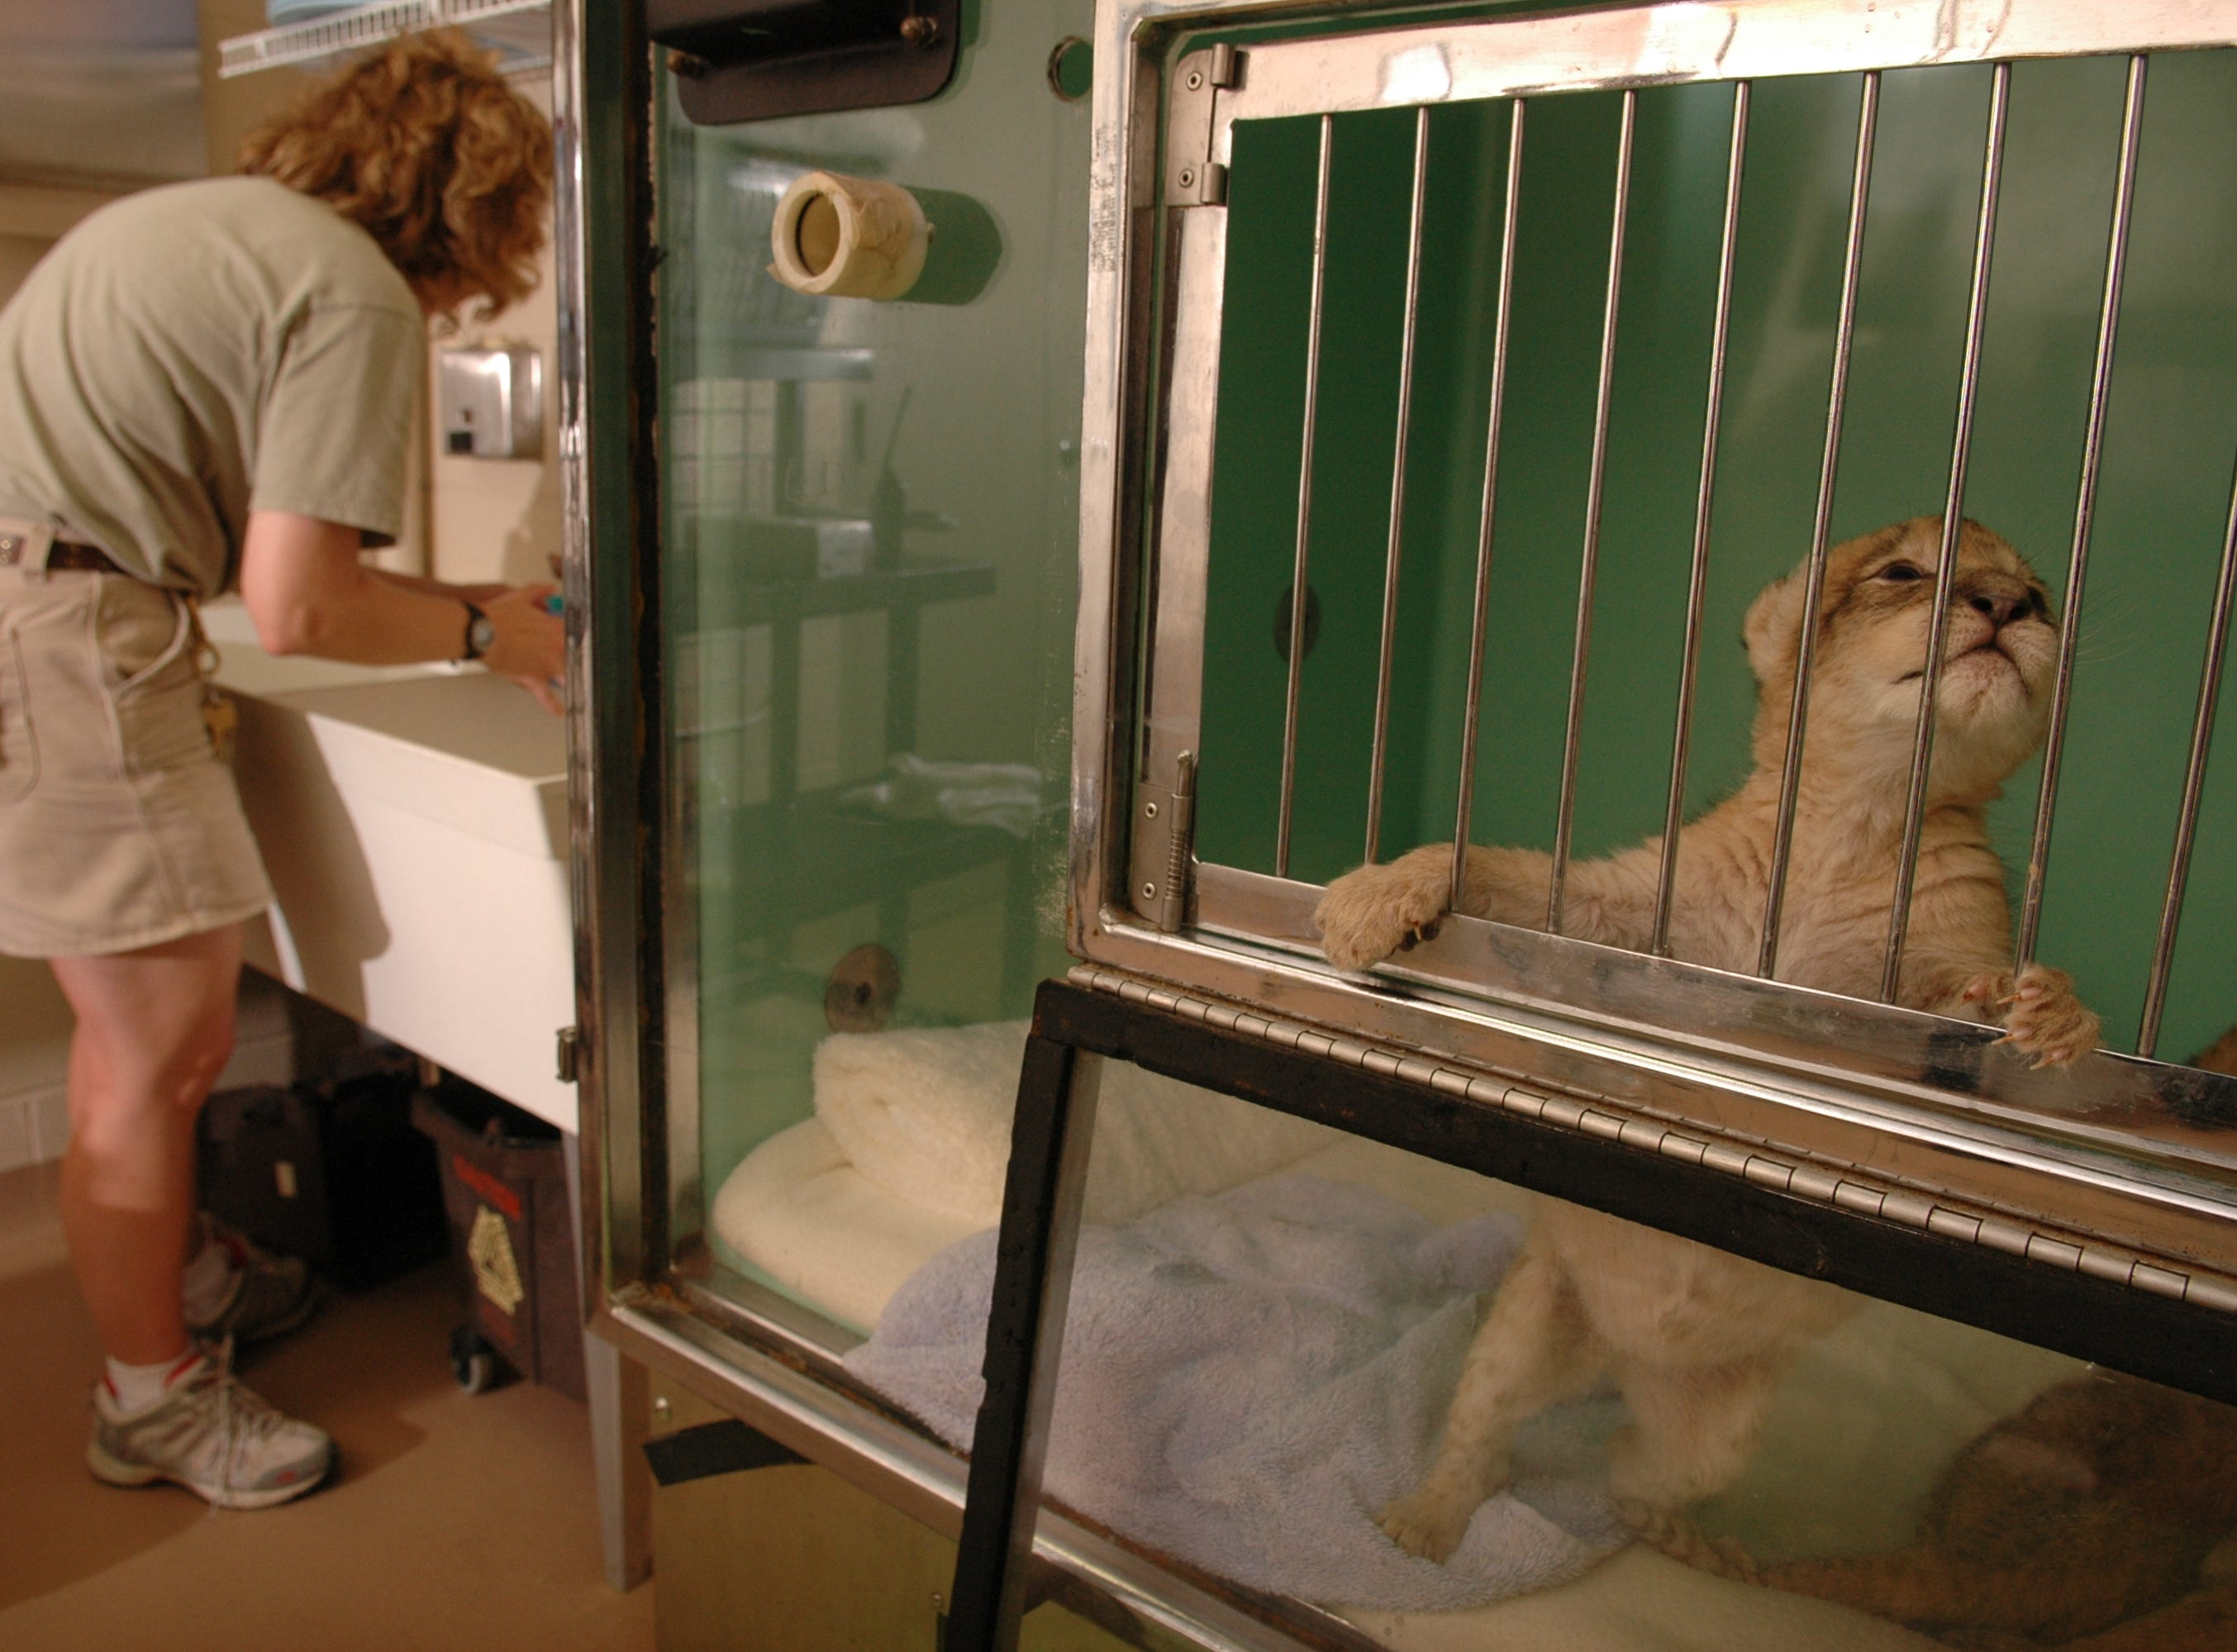 Zookeeper Kelly Creswell prepares to feed four lion cubs at the Knoxville Zoo that are being hand raised, because their natural moms are unable to take care of them.  This female cub is anxious for her bottle. 08/03/06